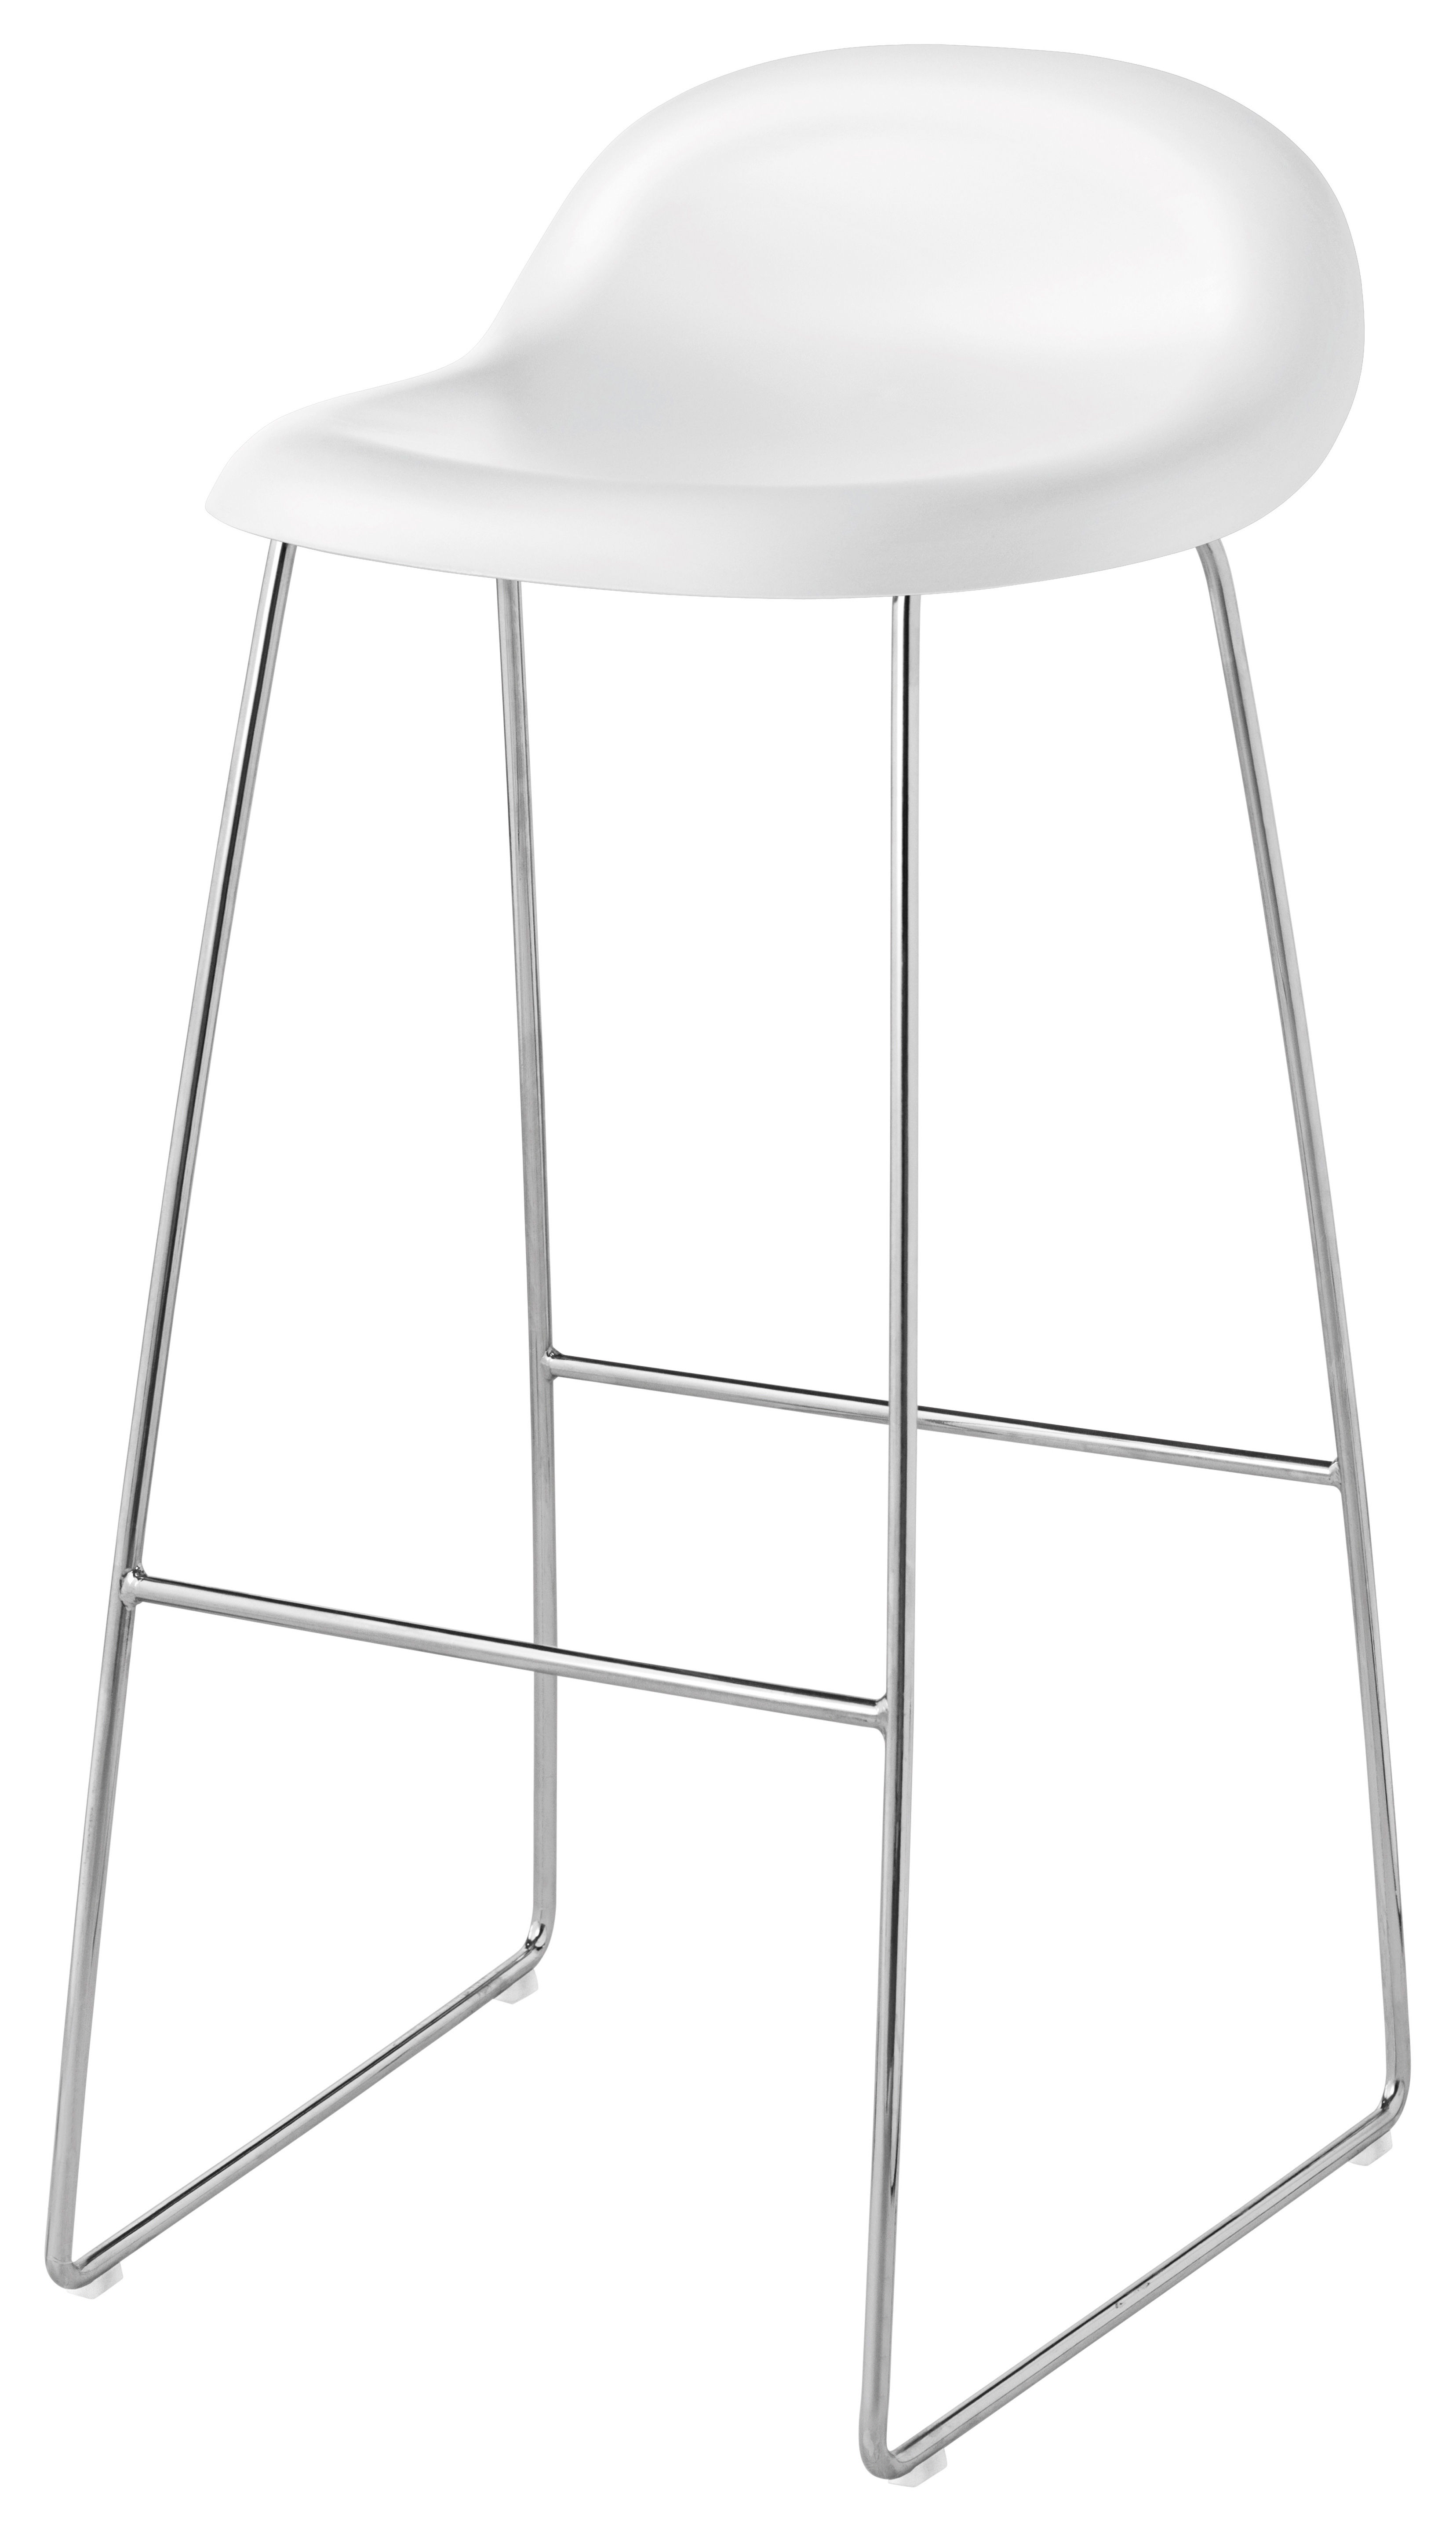 tabouret de bar gubi 3 h 75 cm coque plastique blanc pi tement chrom gubi. Black Bedroom Furniture Sets. Home Design Ideas